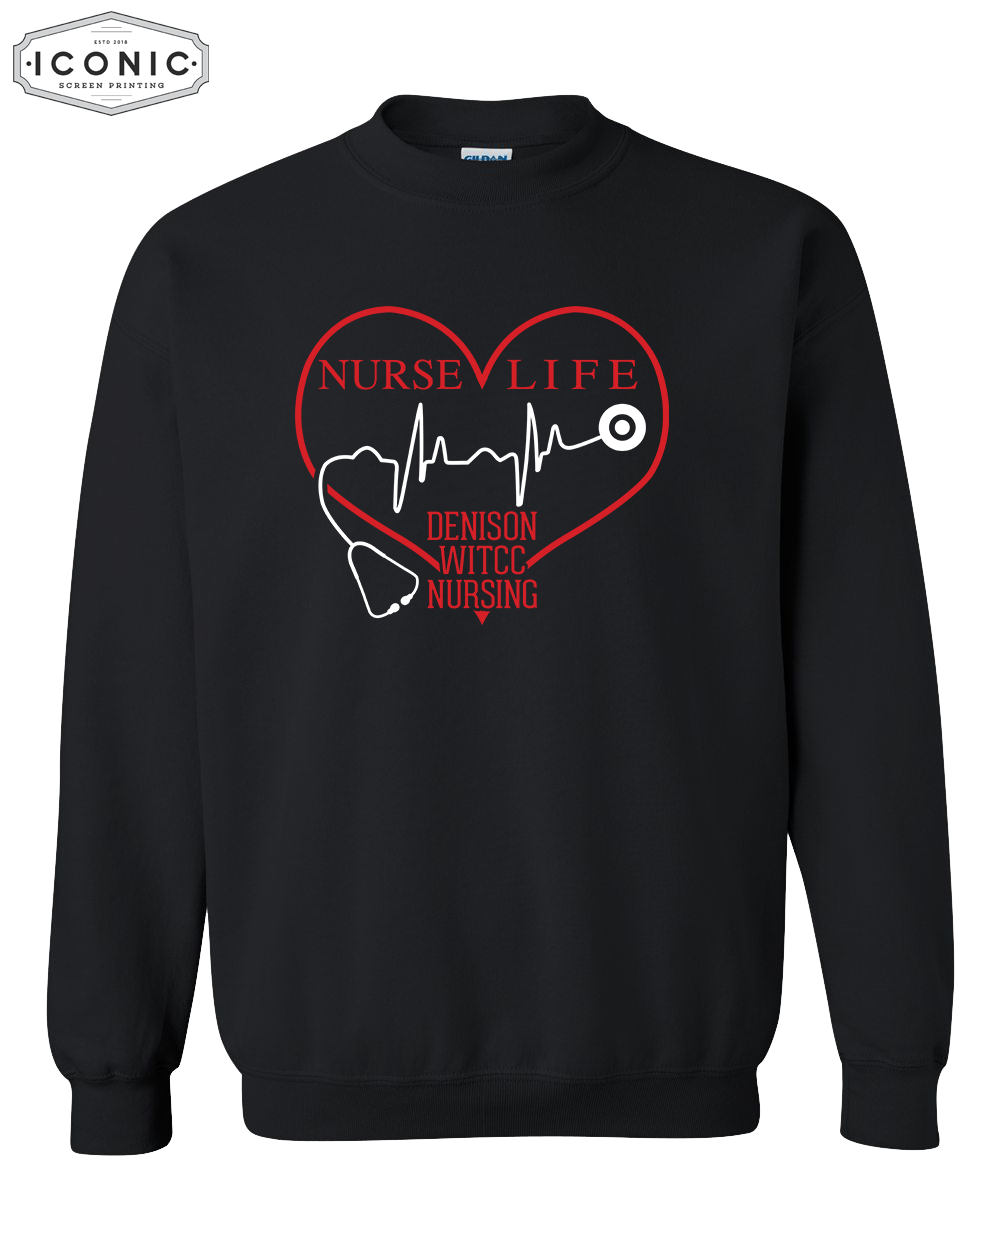 Nurse Life - Heavy Blend Crewneck Sweatshirt